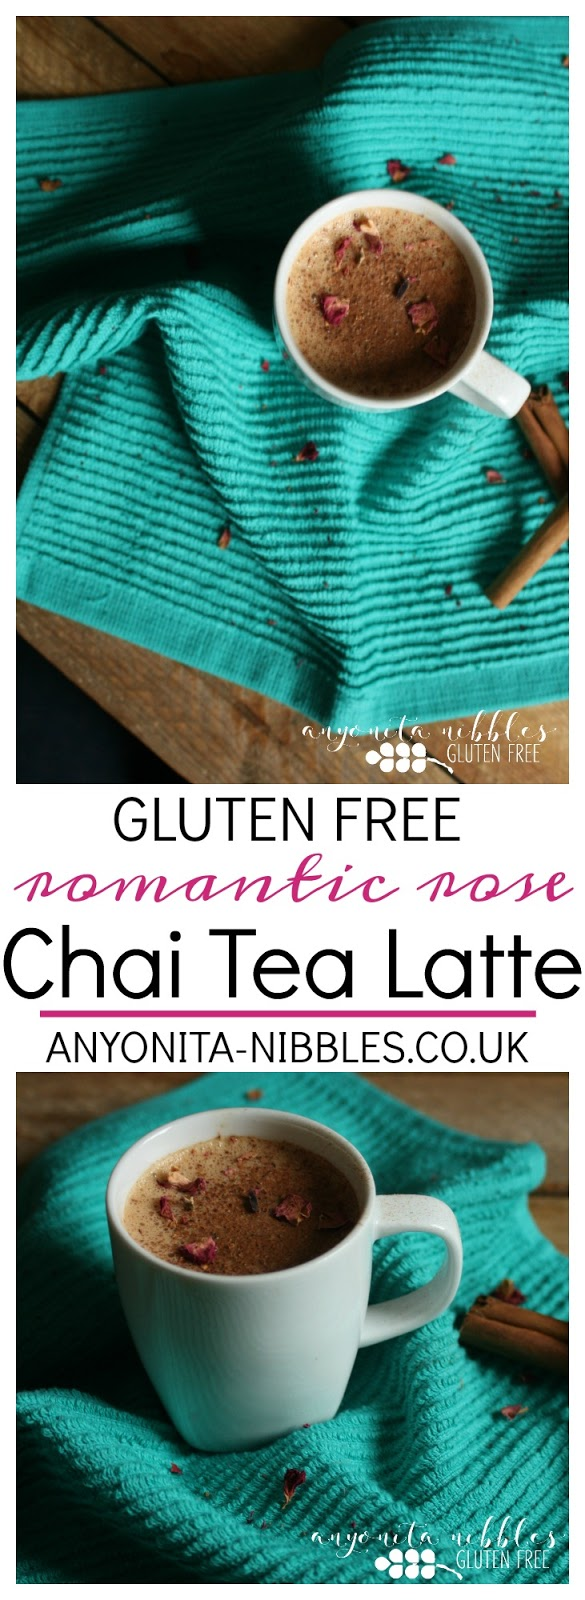 Homemade Chai Tea Latte - the Real Deal from Anyonita-Nibbles.co.uk